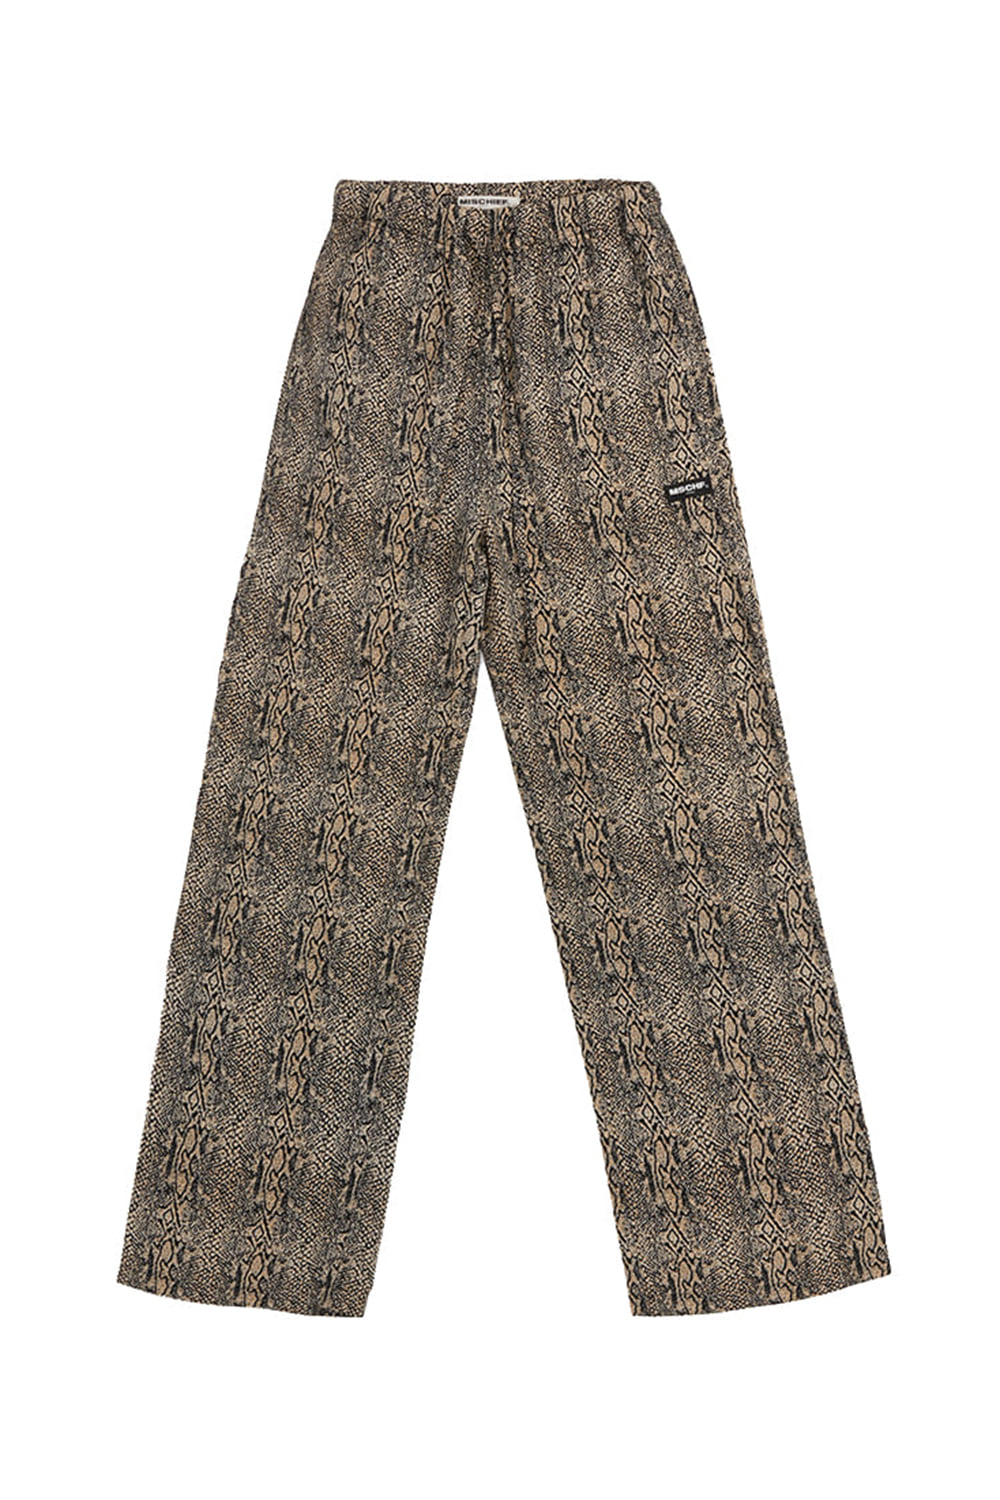 DRAWSTRING TROUSERS_black/yellow python